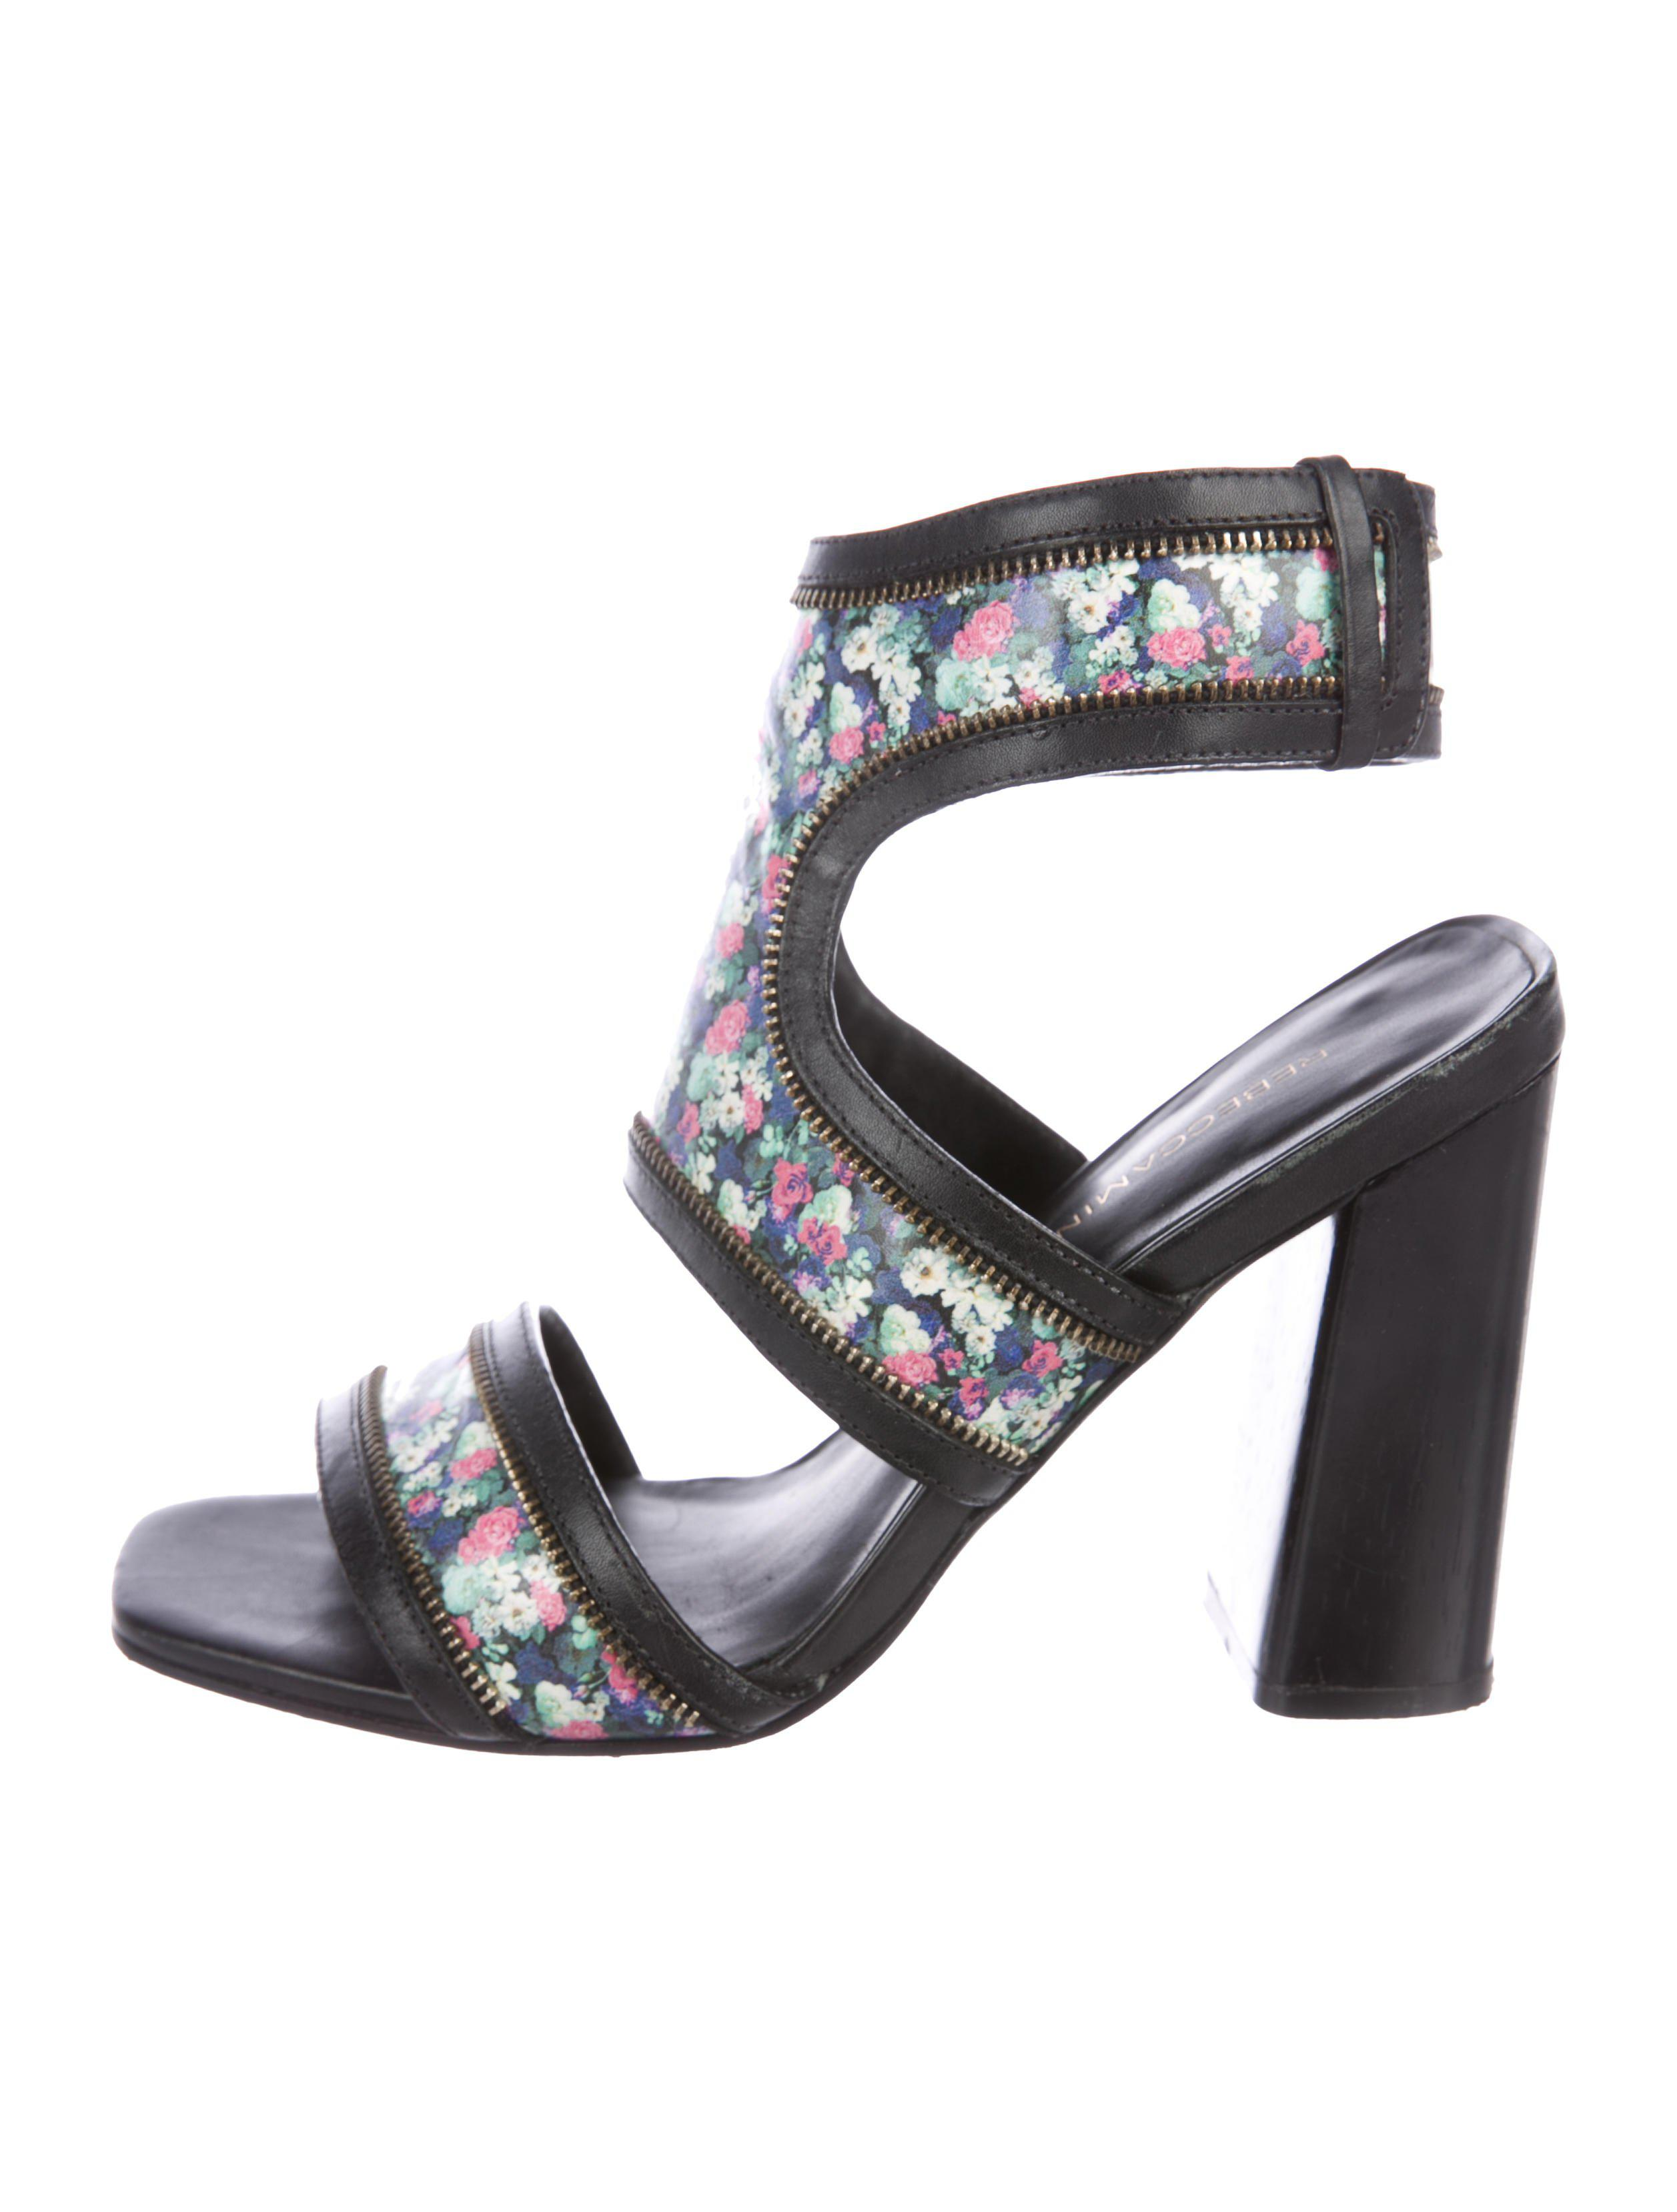 Rebecca Minkoff Printed Leather Sandals release dates authentic discount looking for where to buy uOzNqEzb